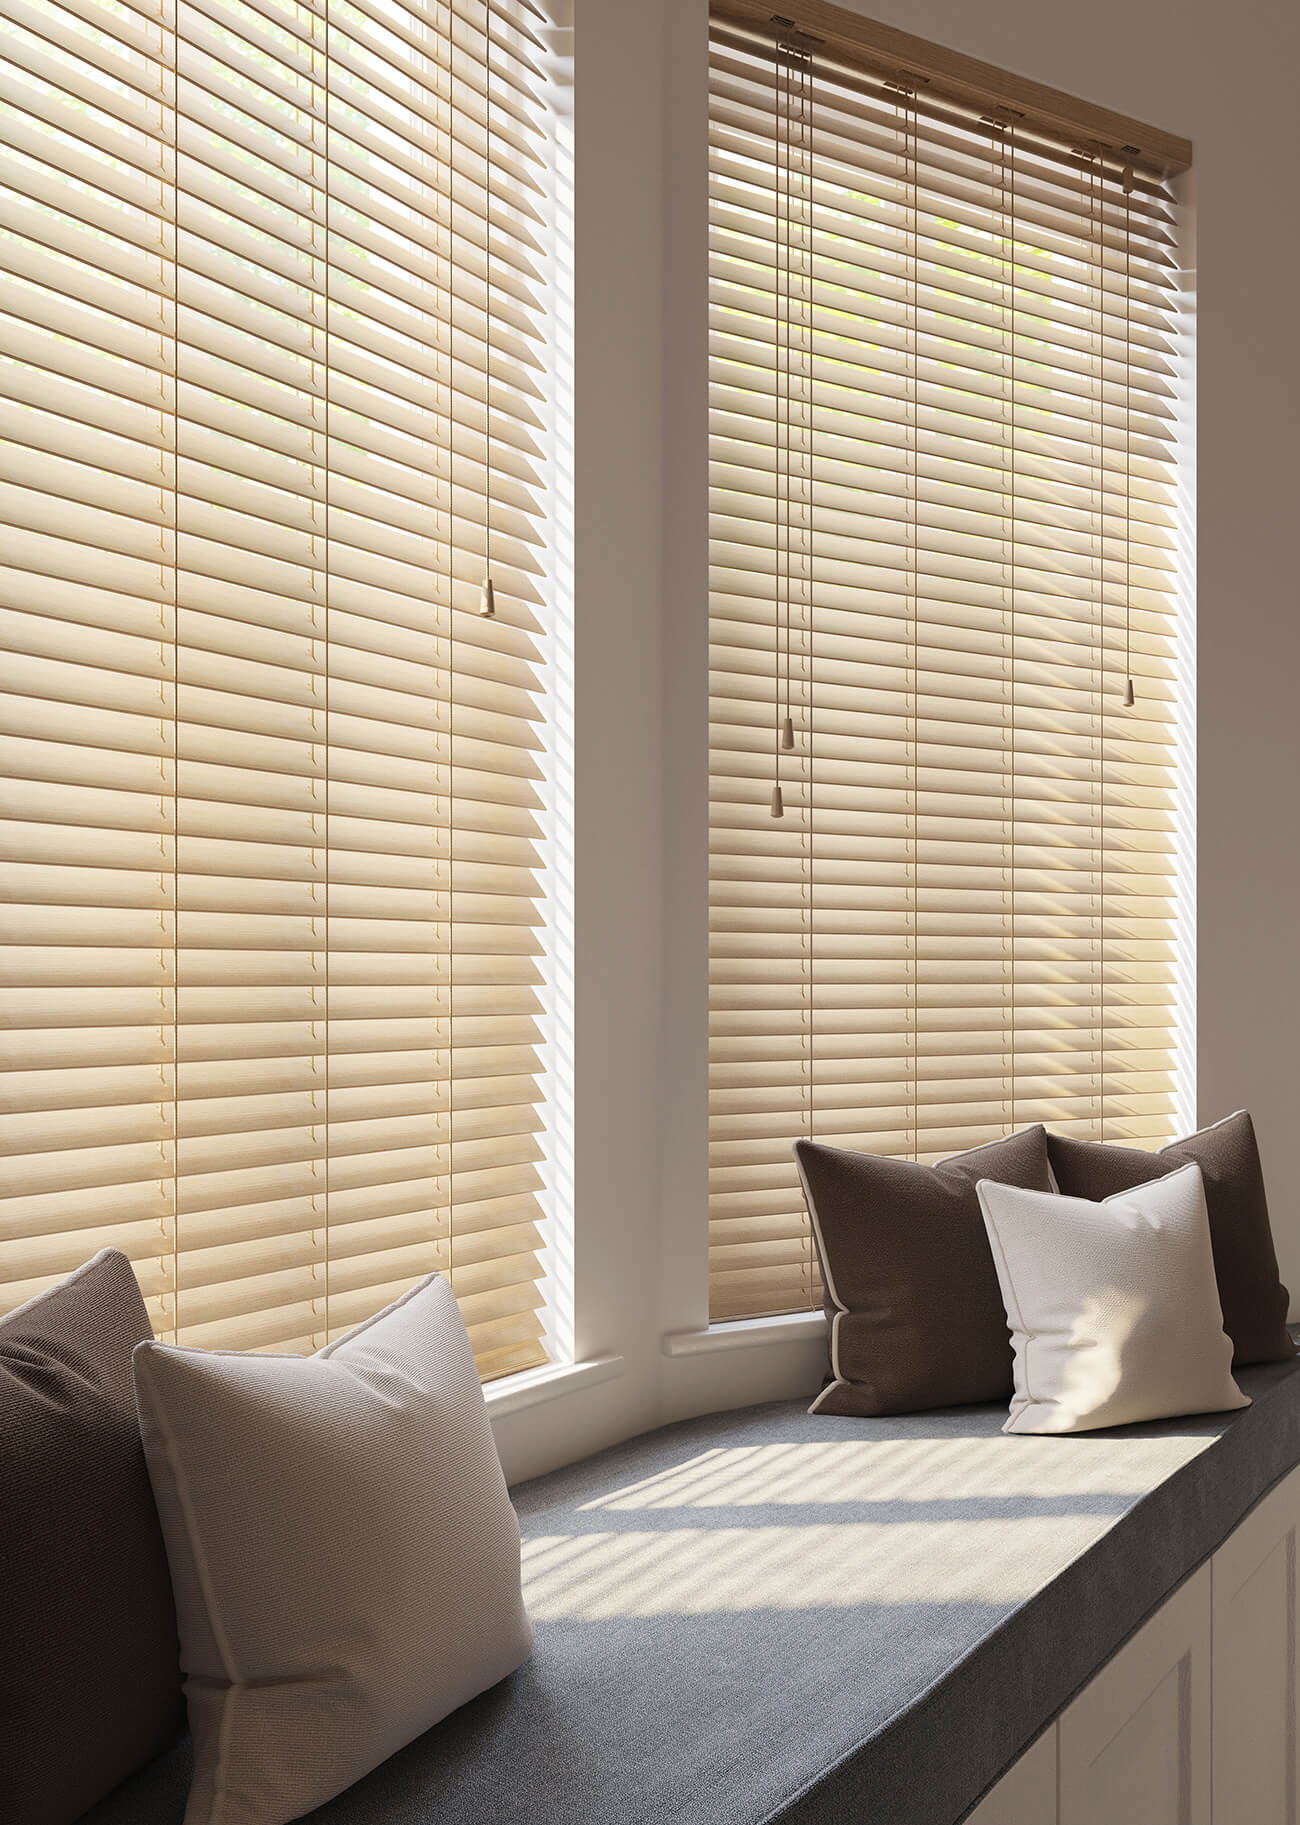 venetian blinds - Littlehampton Blinds